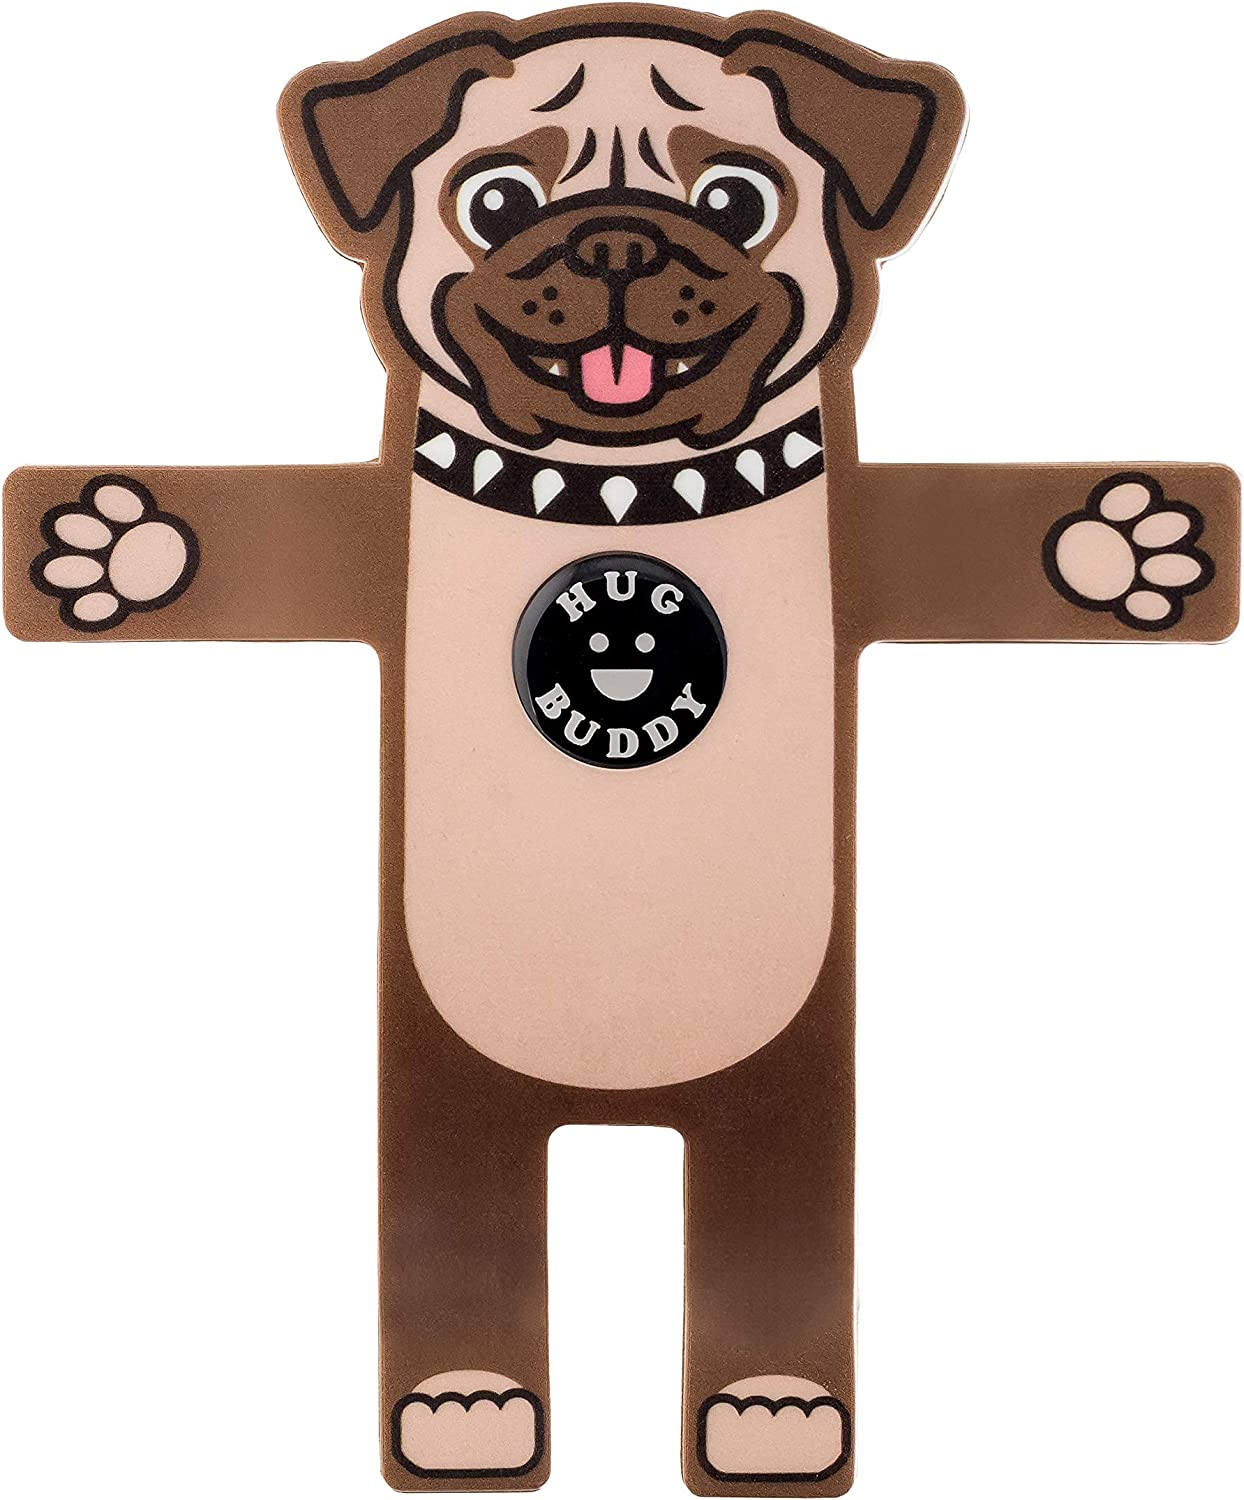 Pug Dog Hug Buddy Air Vent Car Phone Holder, Adjustable, Universal Fit, Cell Phone Mount Compatible with iPhone, Samsung Galaxy, LG, Google, Pixel, Moto, Black and Other Smartphones